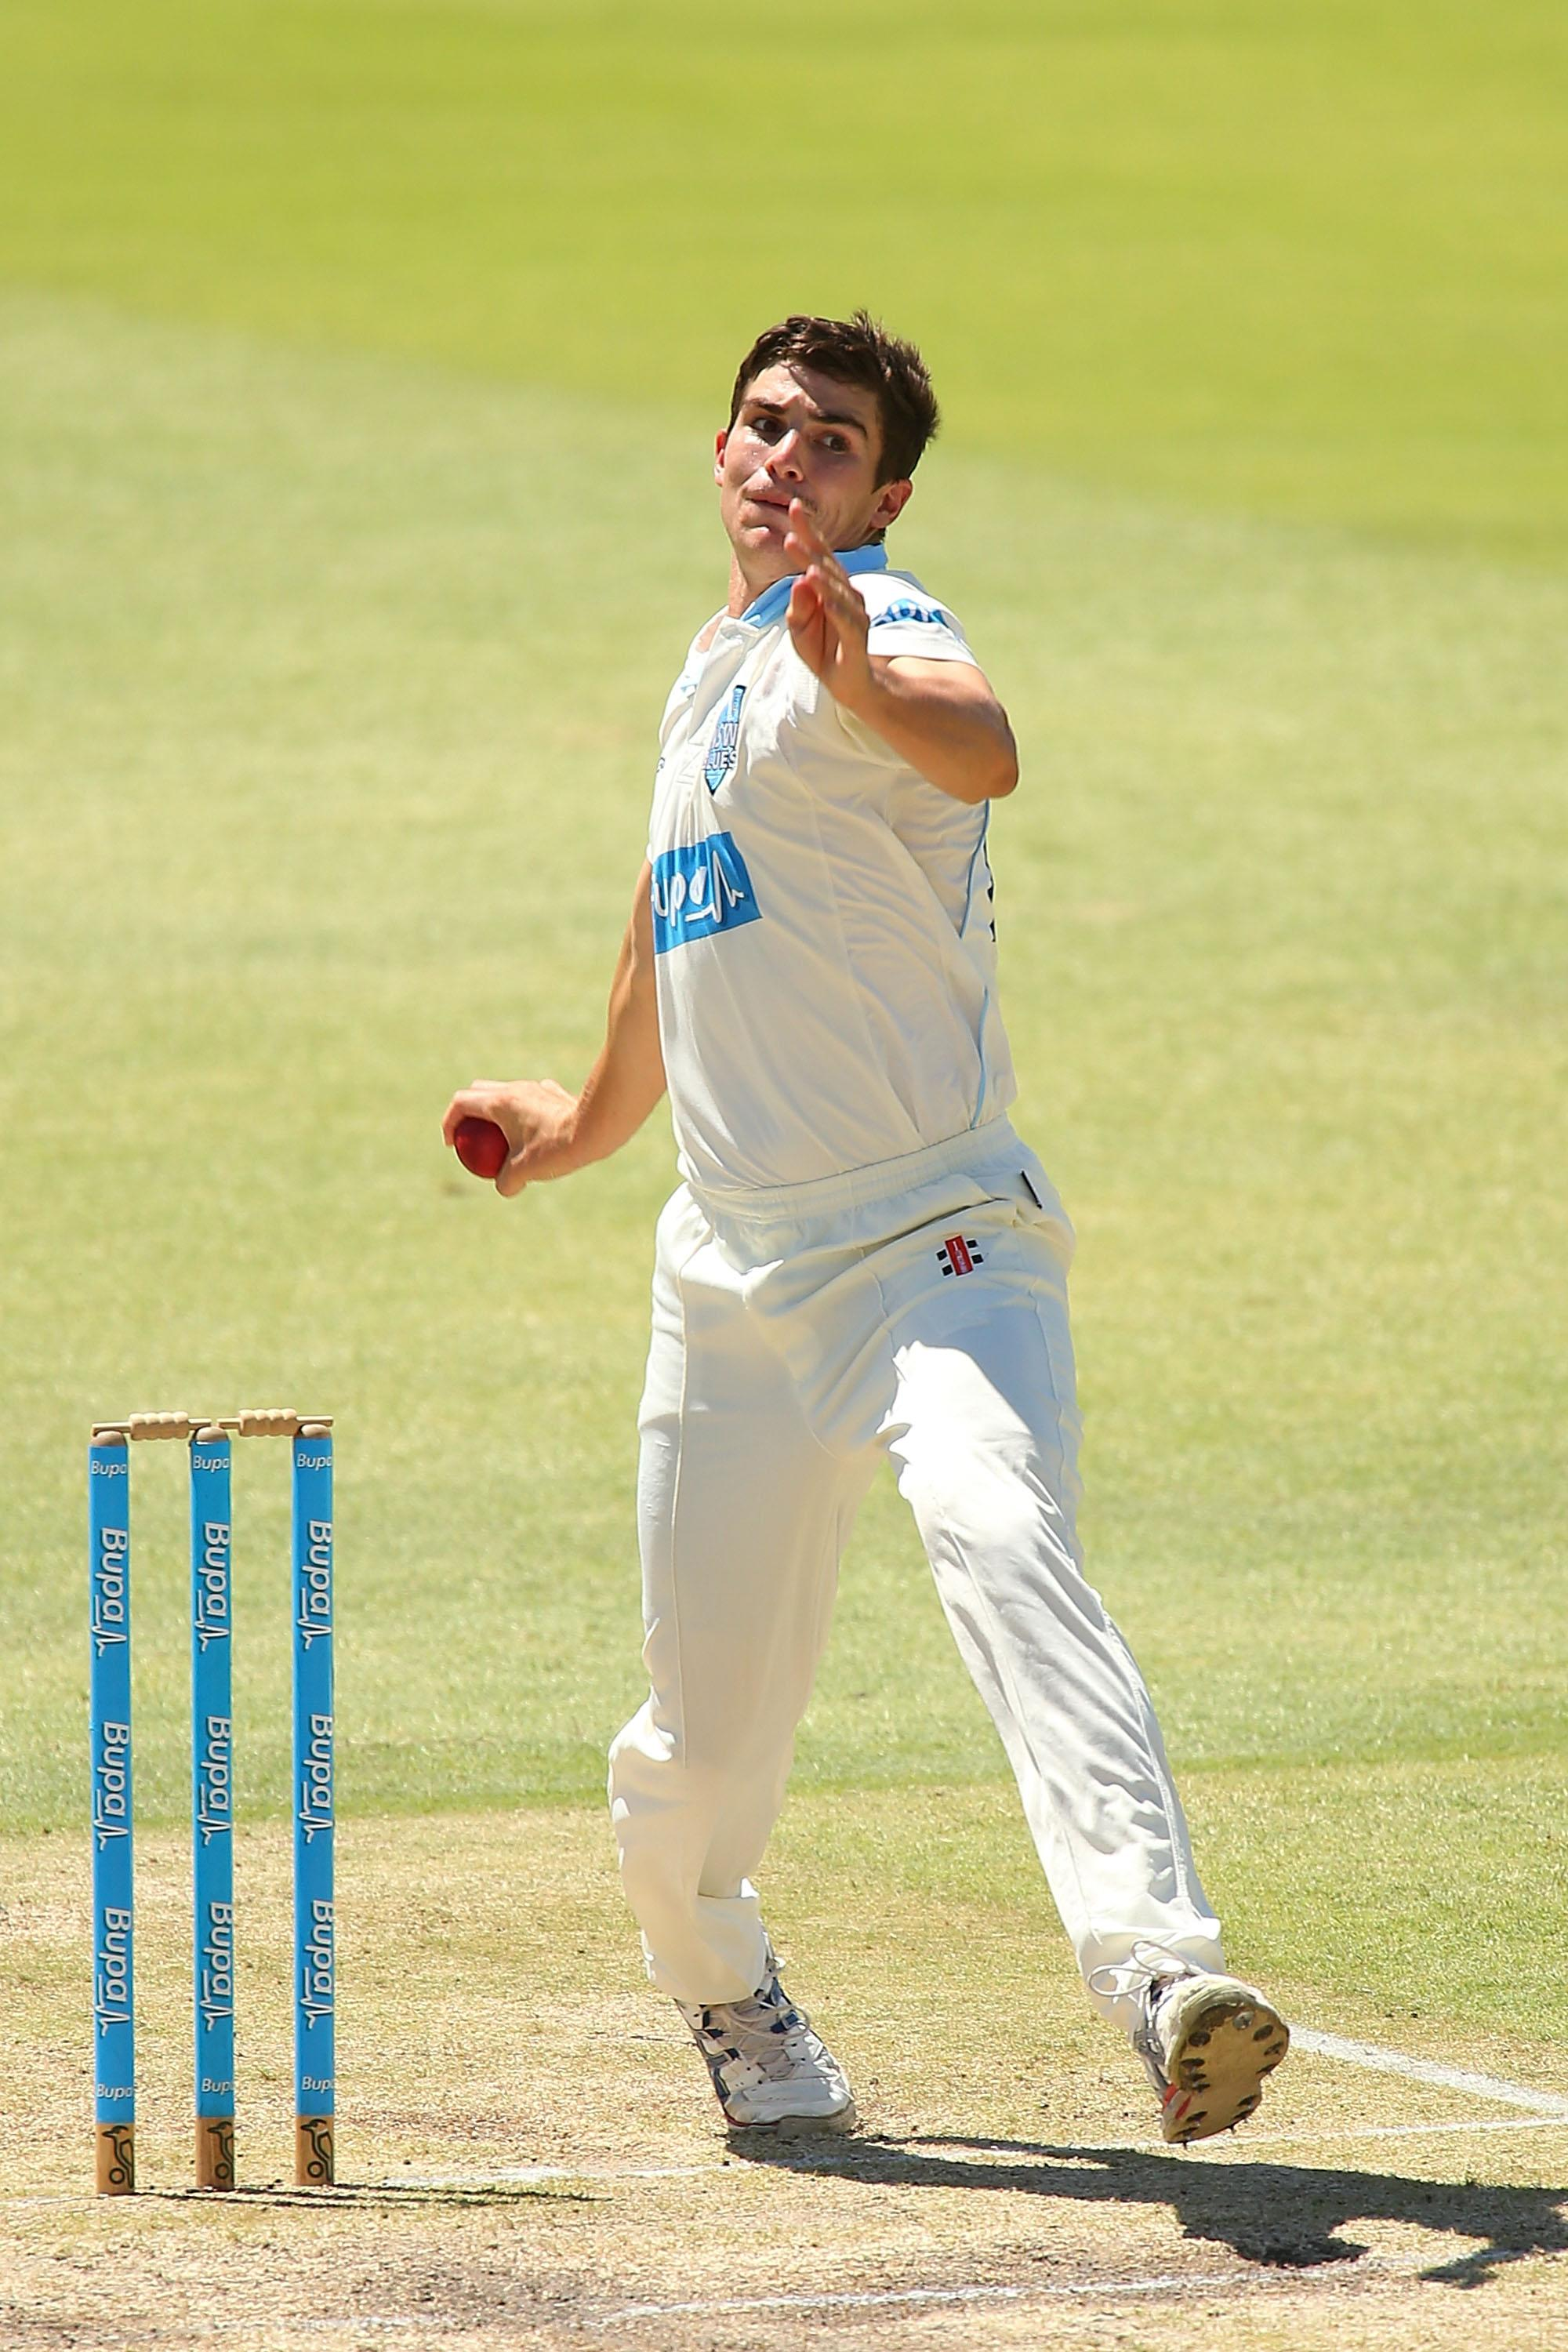 Sean Abbott bowled the delivery that led to Phillip Hughes' death in 2014